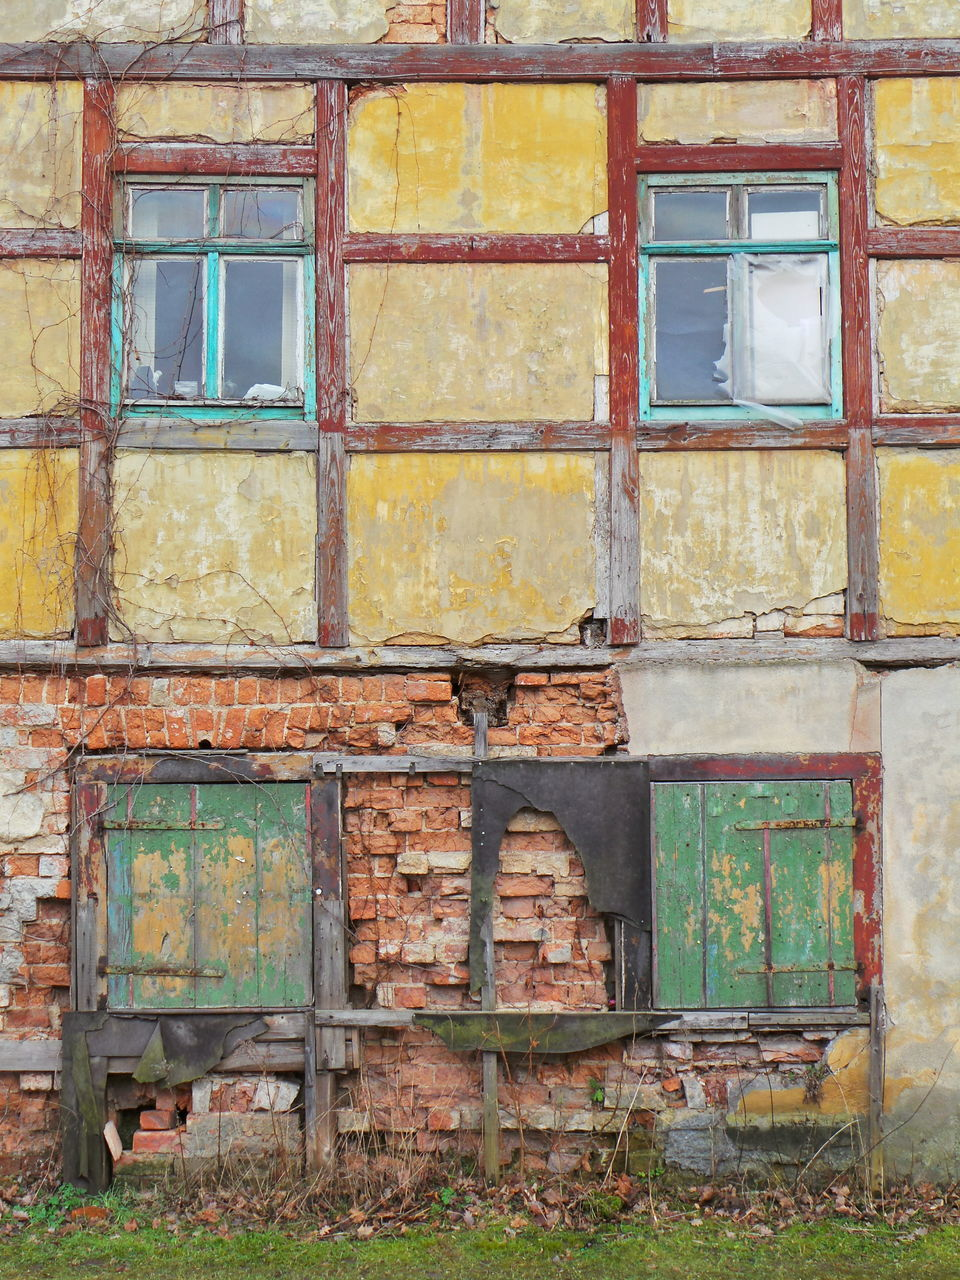 window, architecture, building exterior, built structure, abandoned, no people, weathered, day, rotting, outdoors, close-up